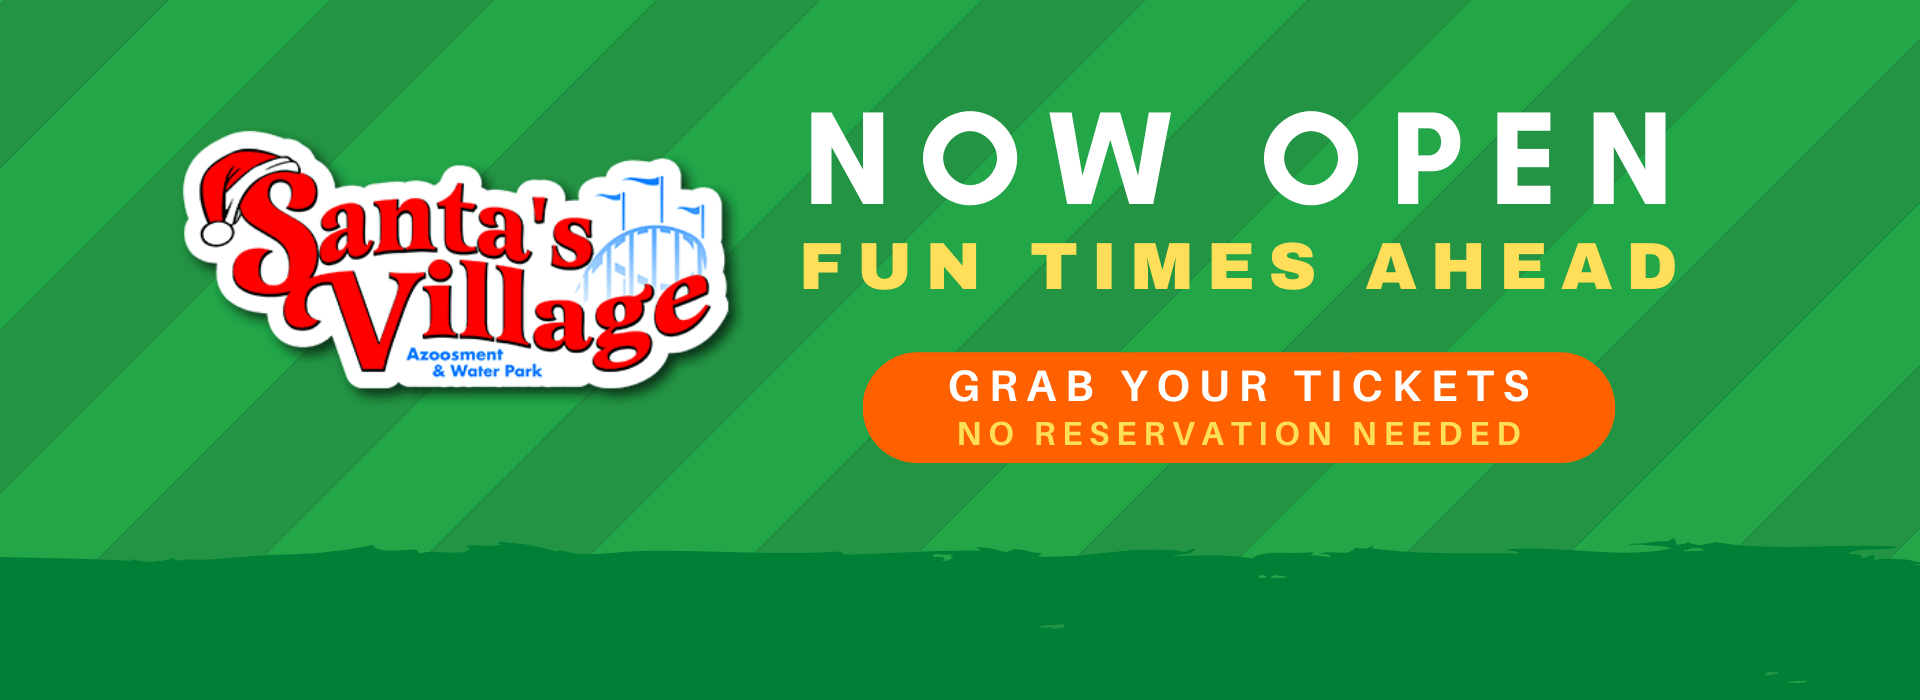 Green banners saying Santa's Village is now open!